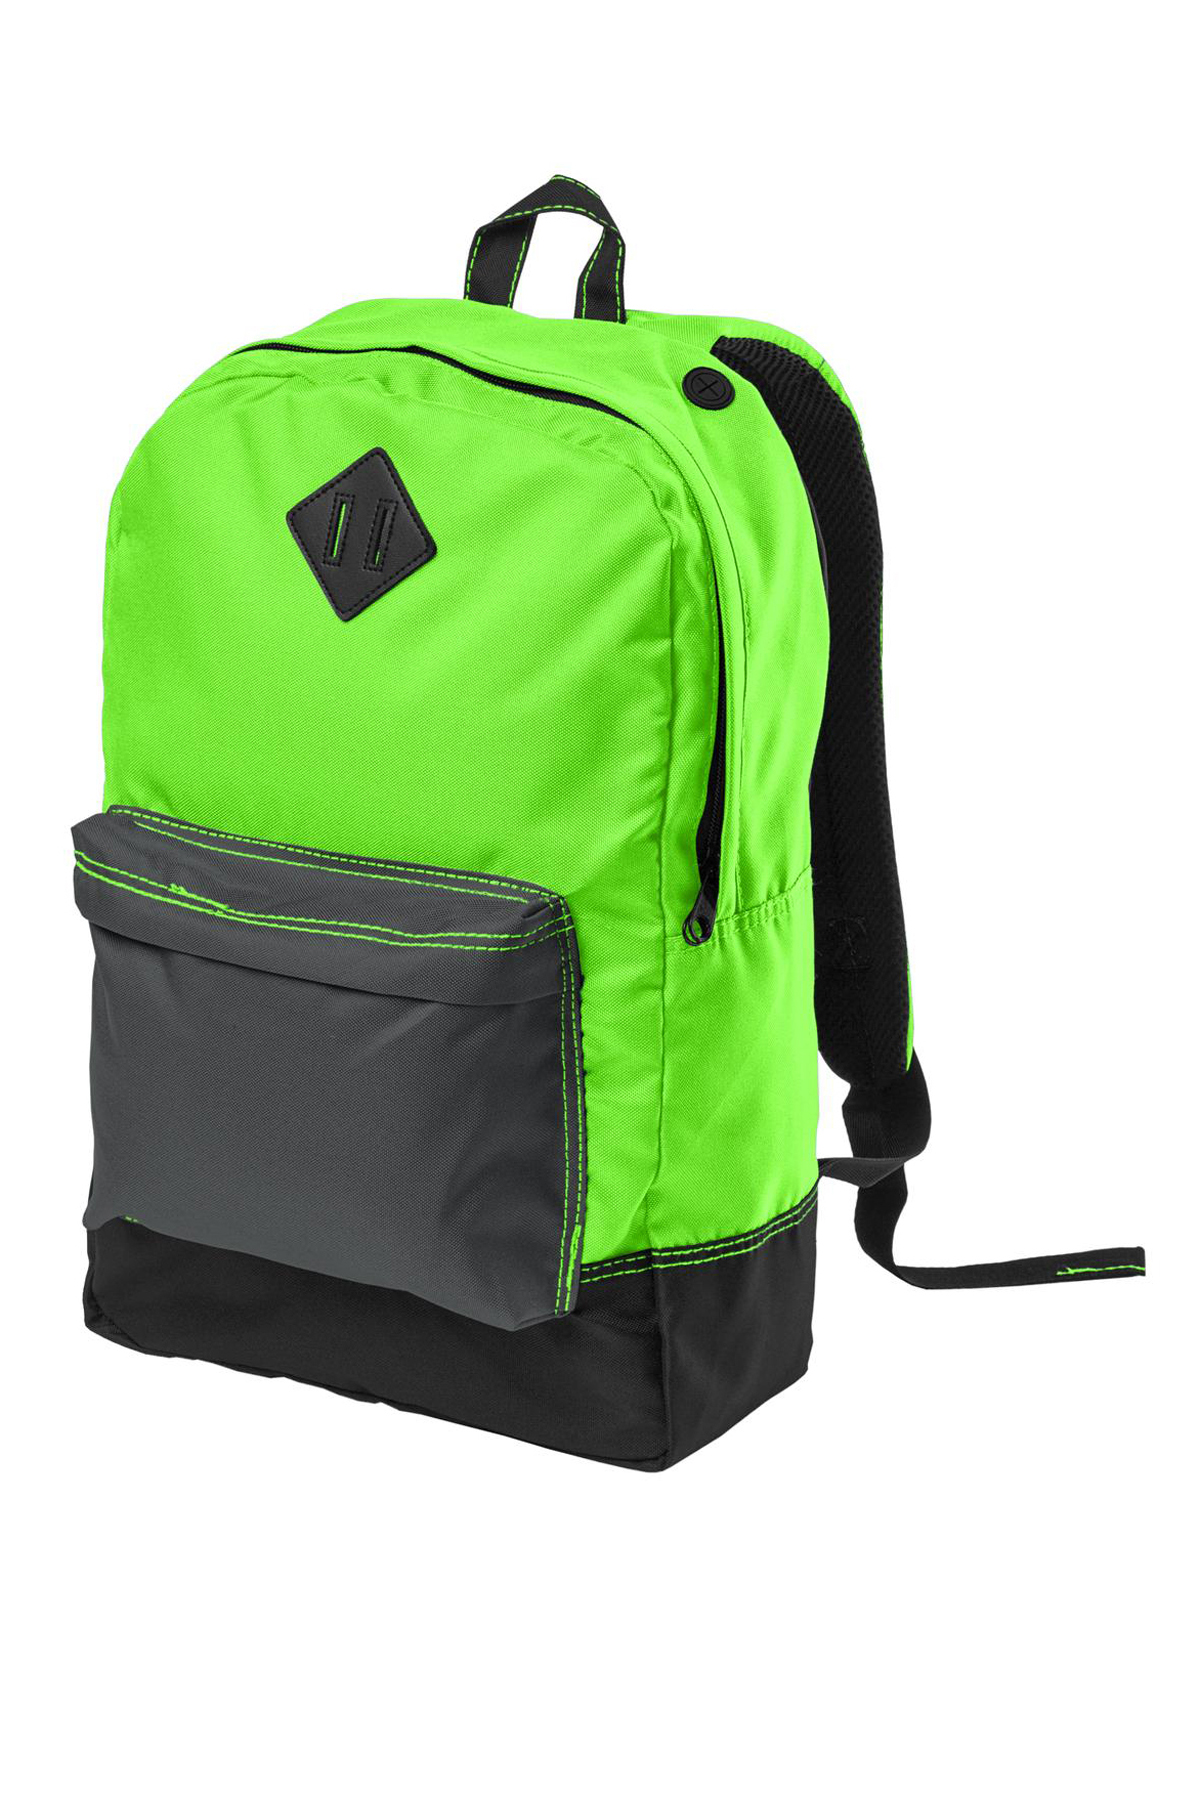 Bags-Backpacks-32